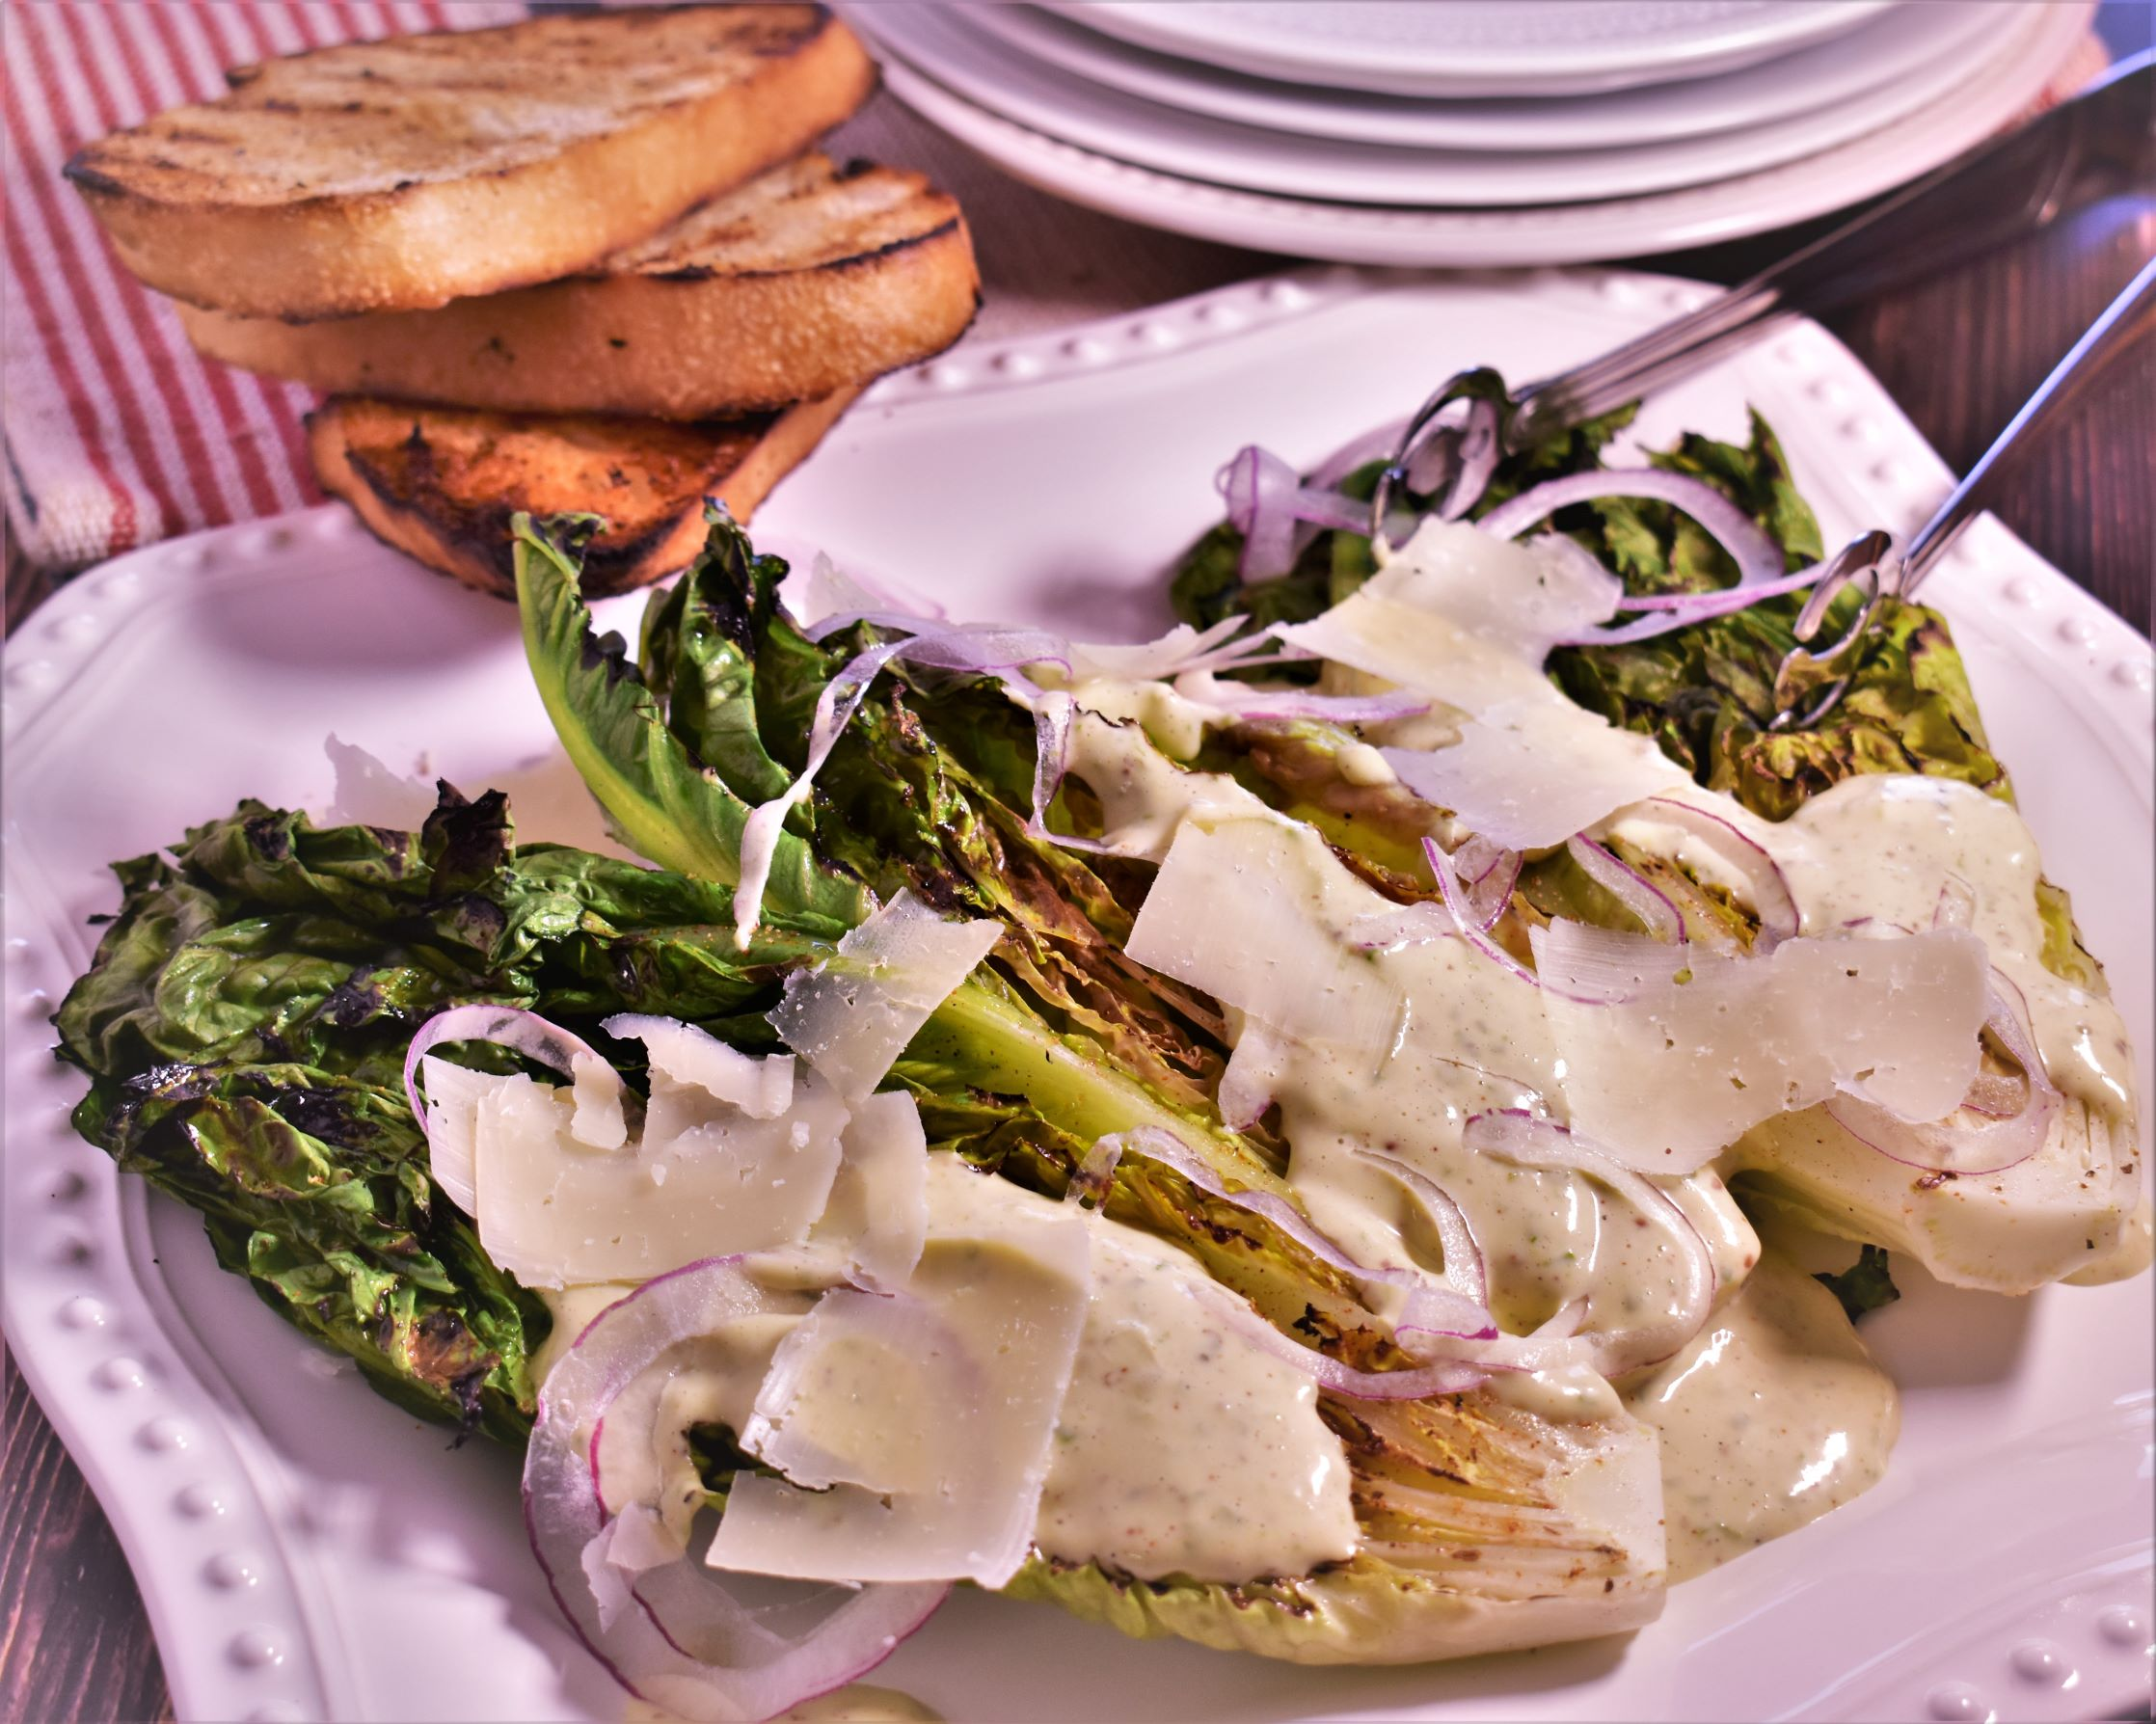 Grilled Romaine Salad with Green Onion Dressing